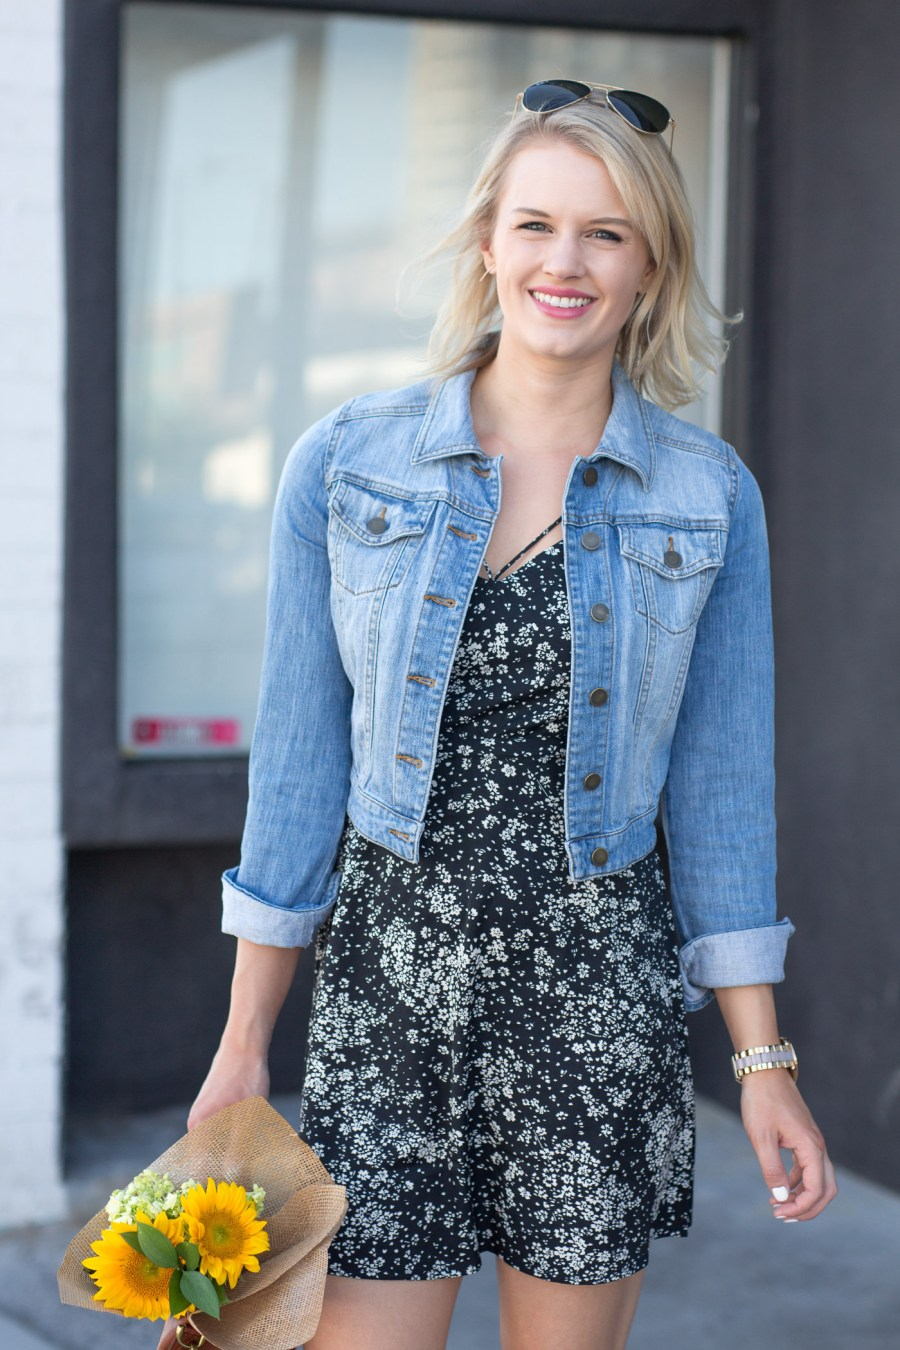 How to style a denim jacket for summer, summer outfit idea, Topshop sundress, fashion blog, Treats and Trends